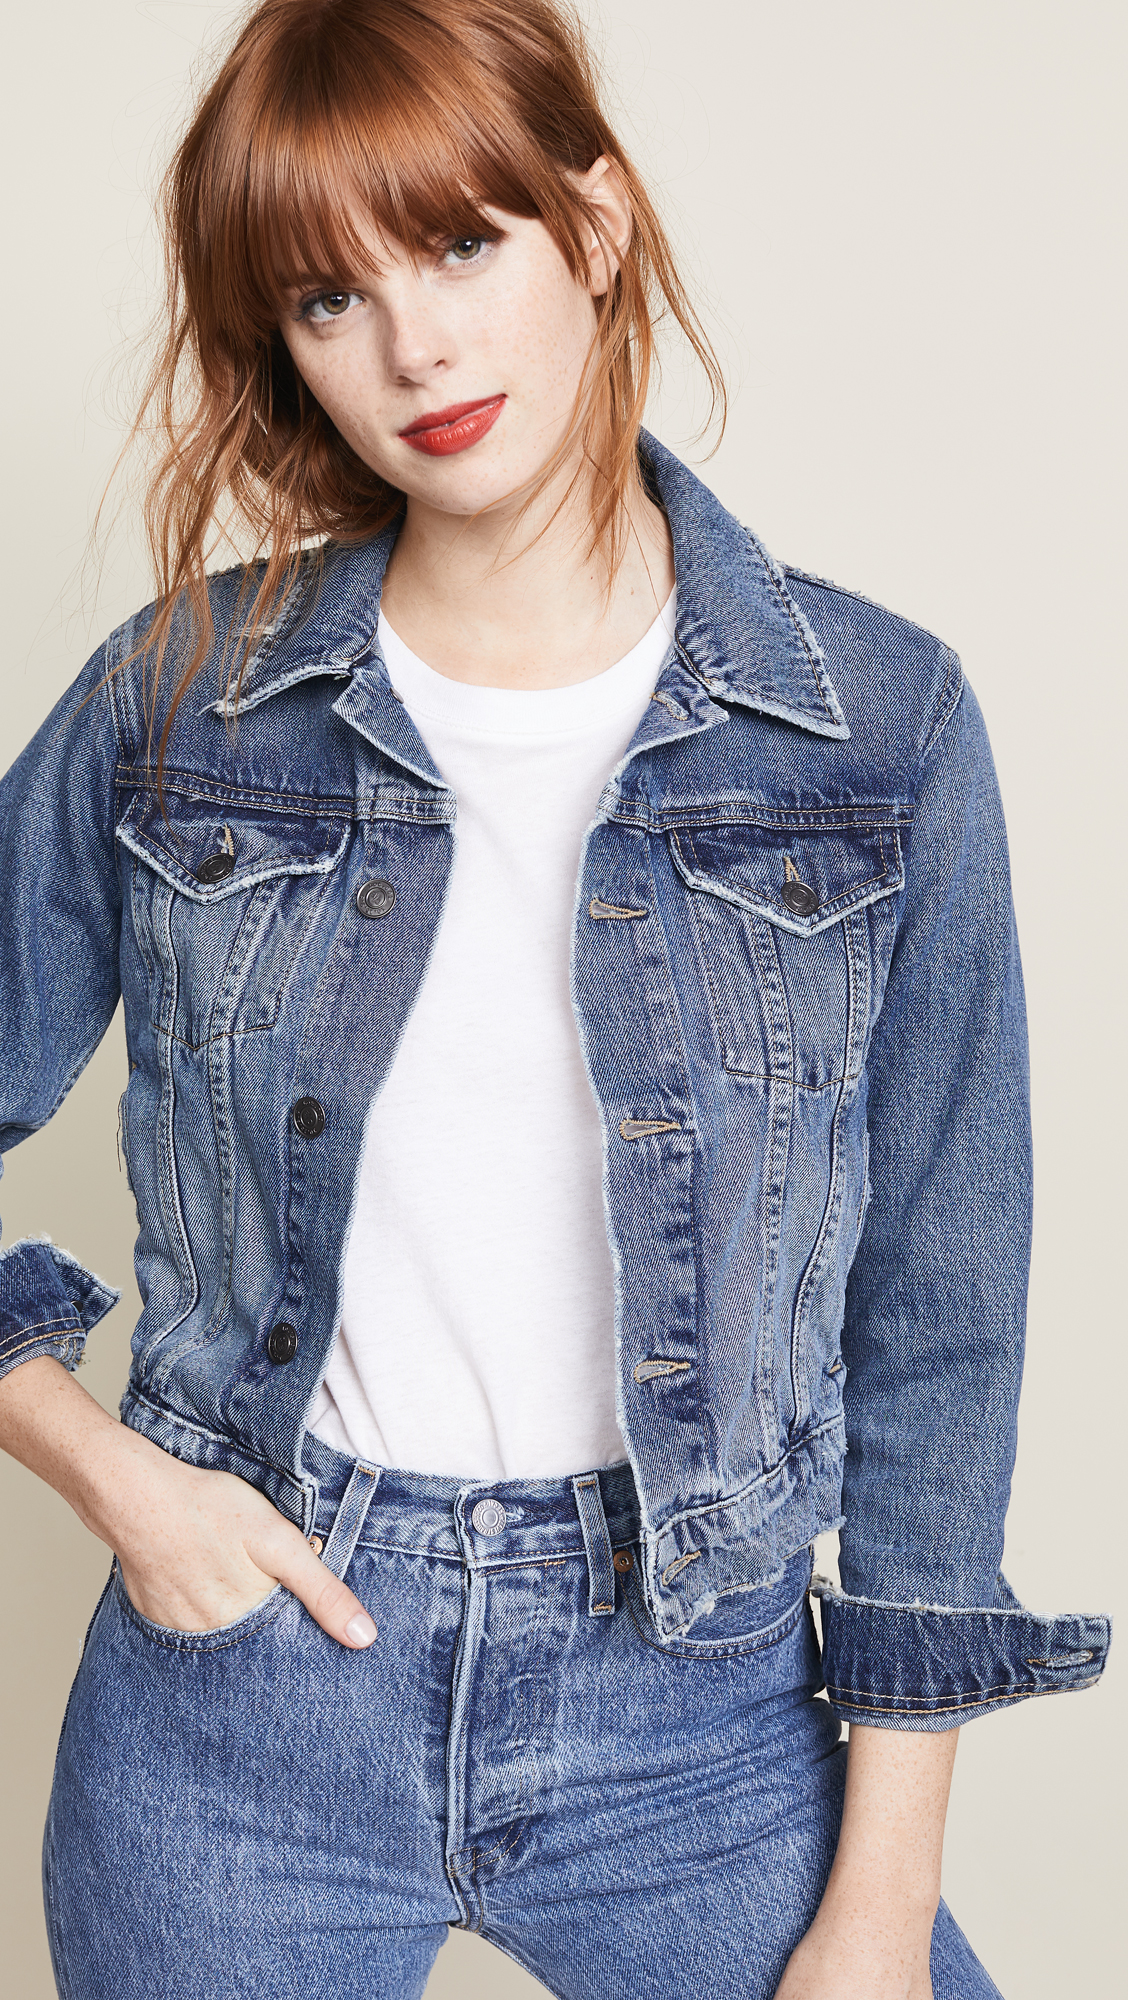 shrunken denim jacket, trucker jacket